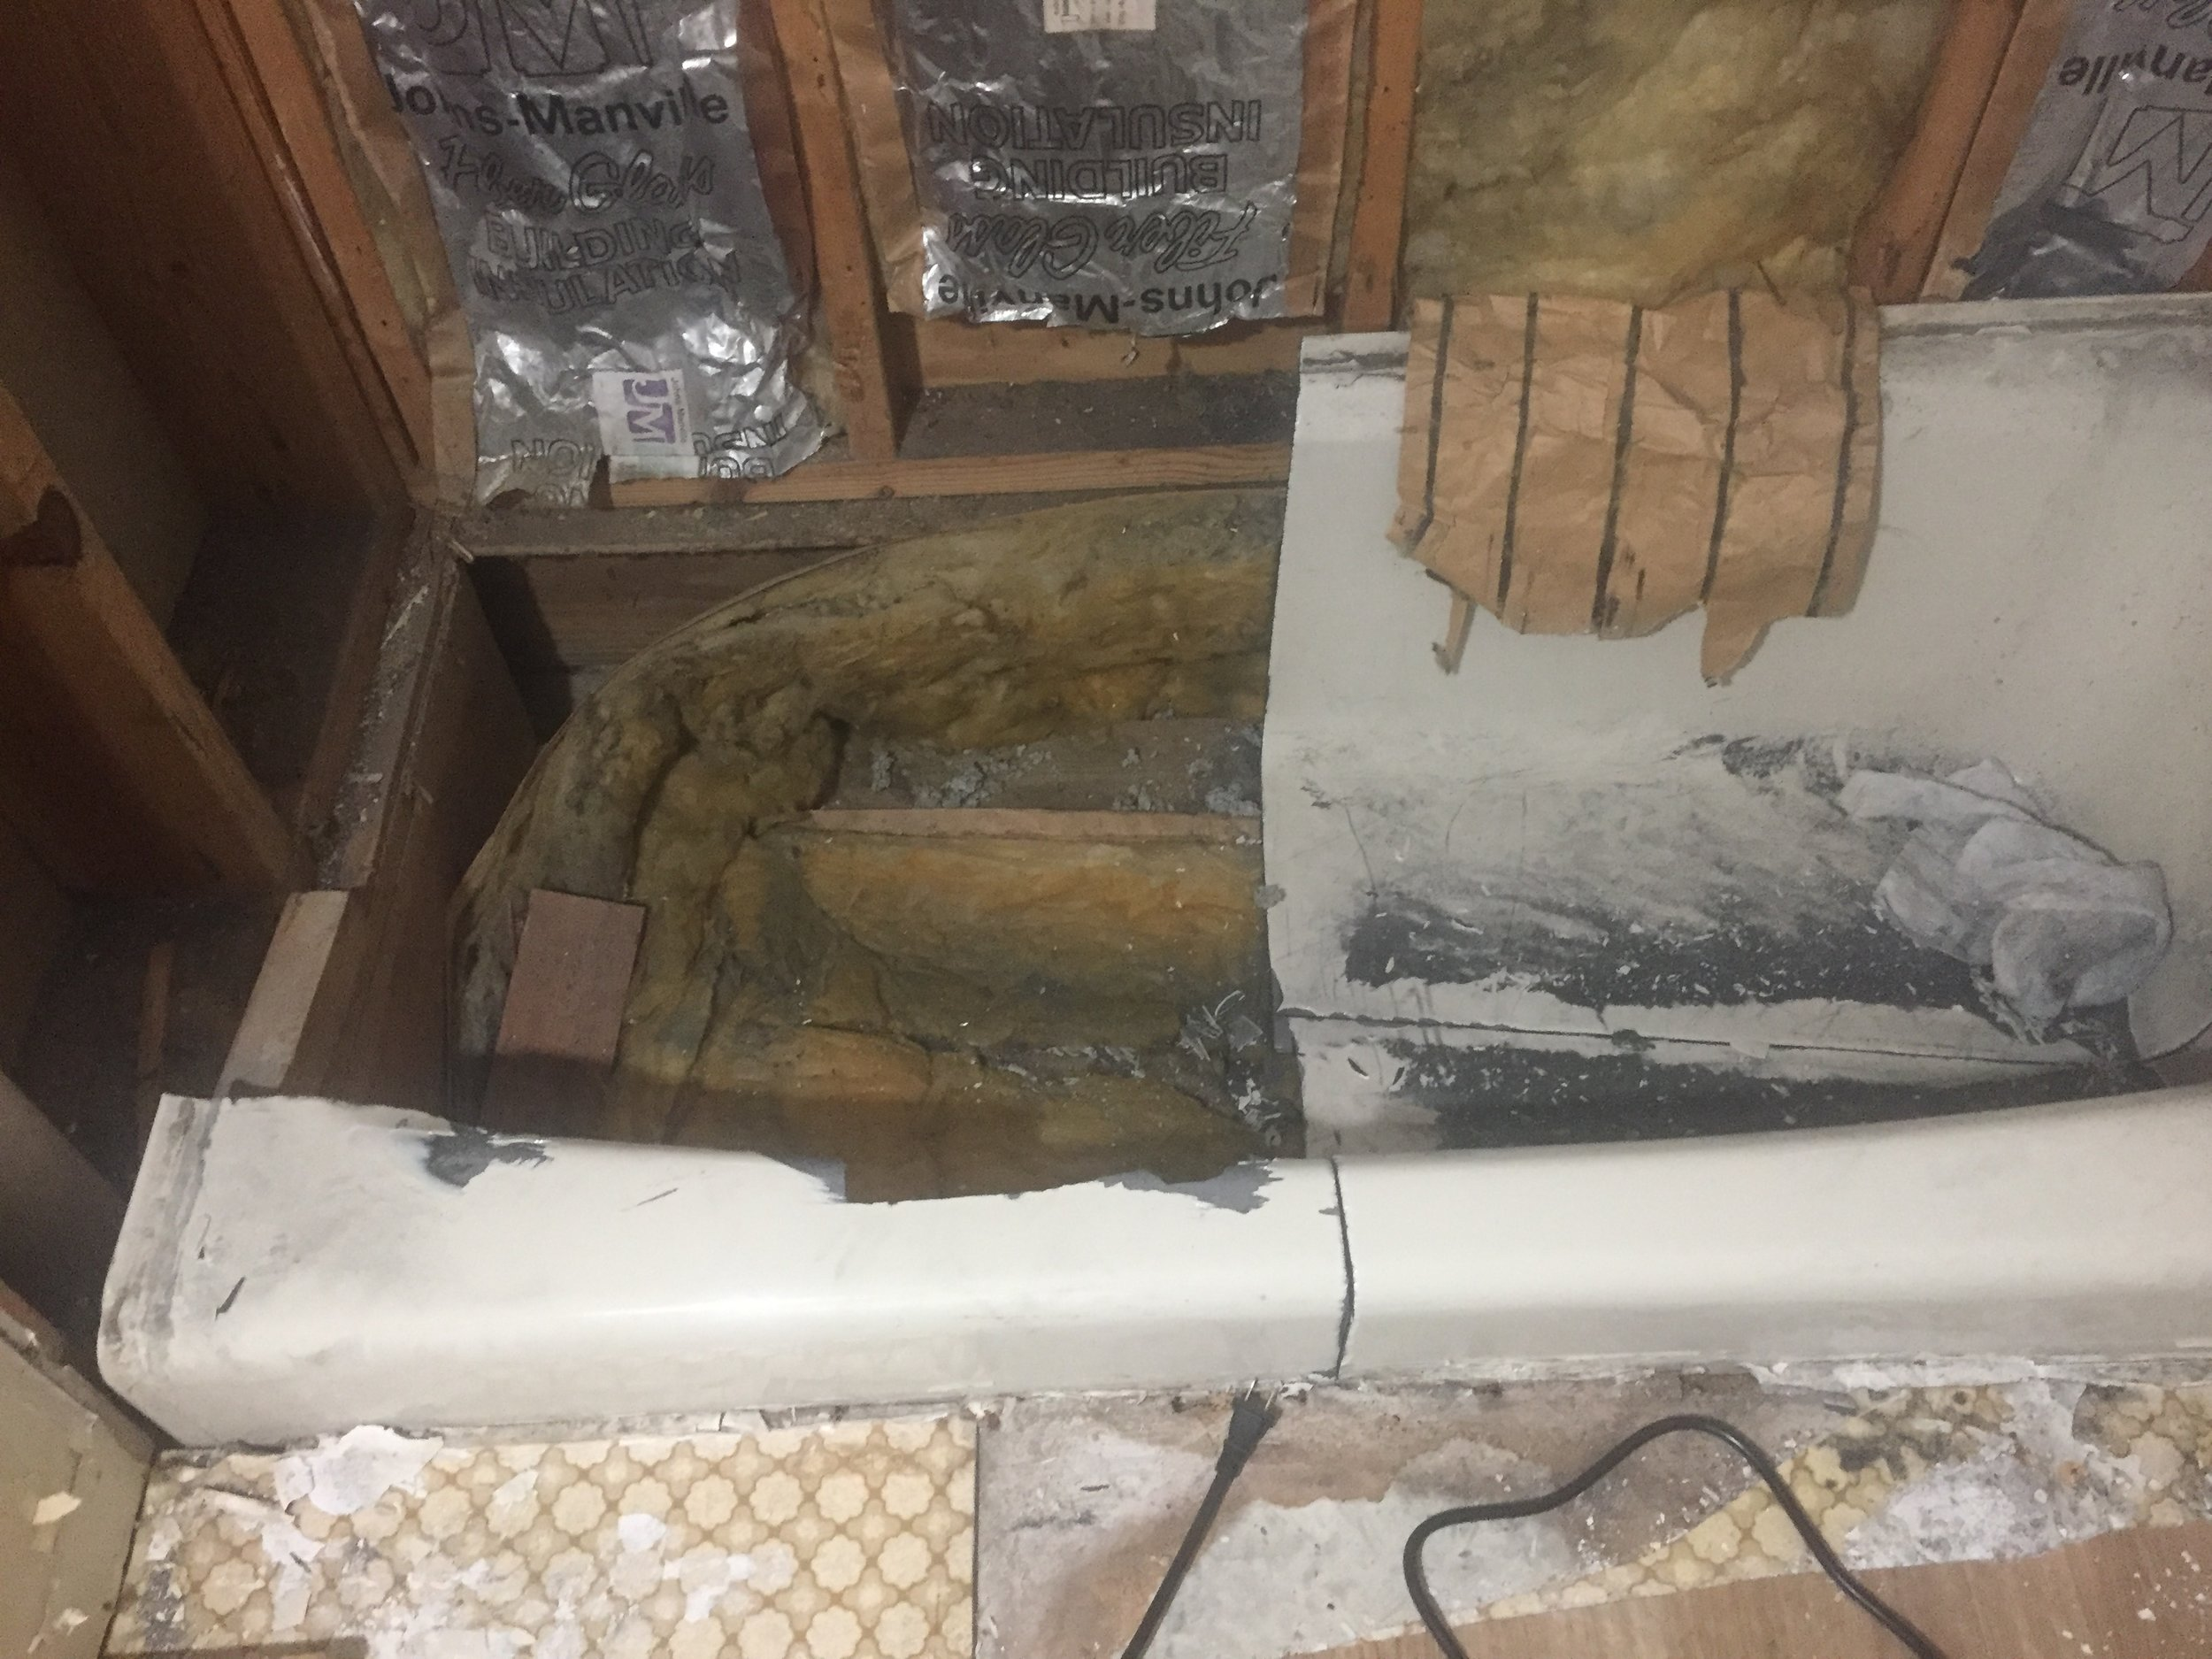 HALL BATH: Removing Cast Iron Tub Continued